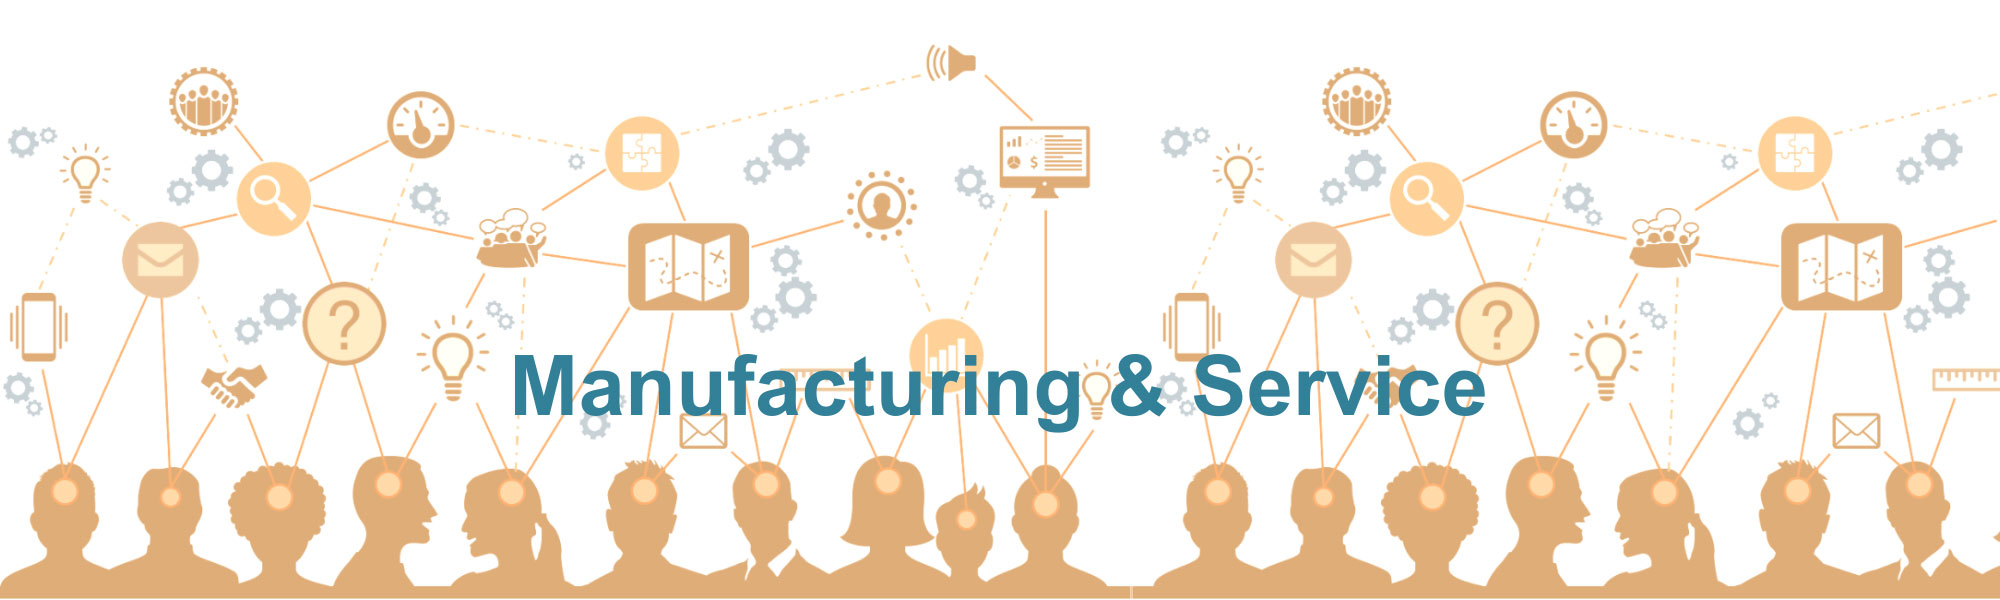 manufacturing-services image